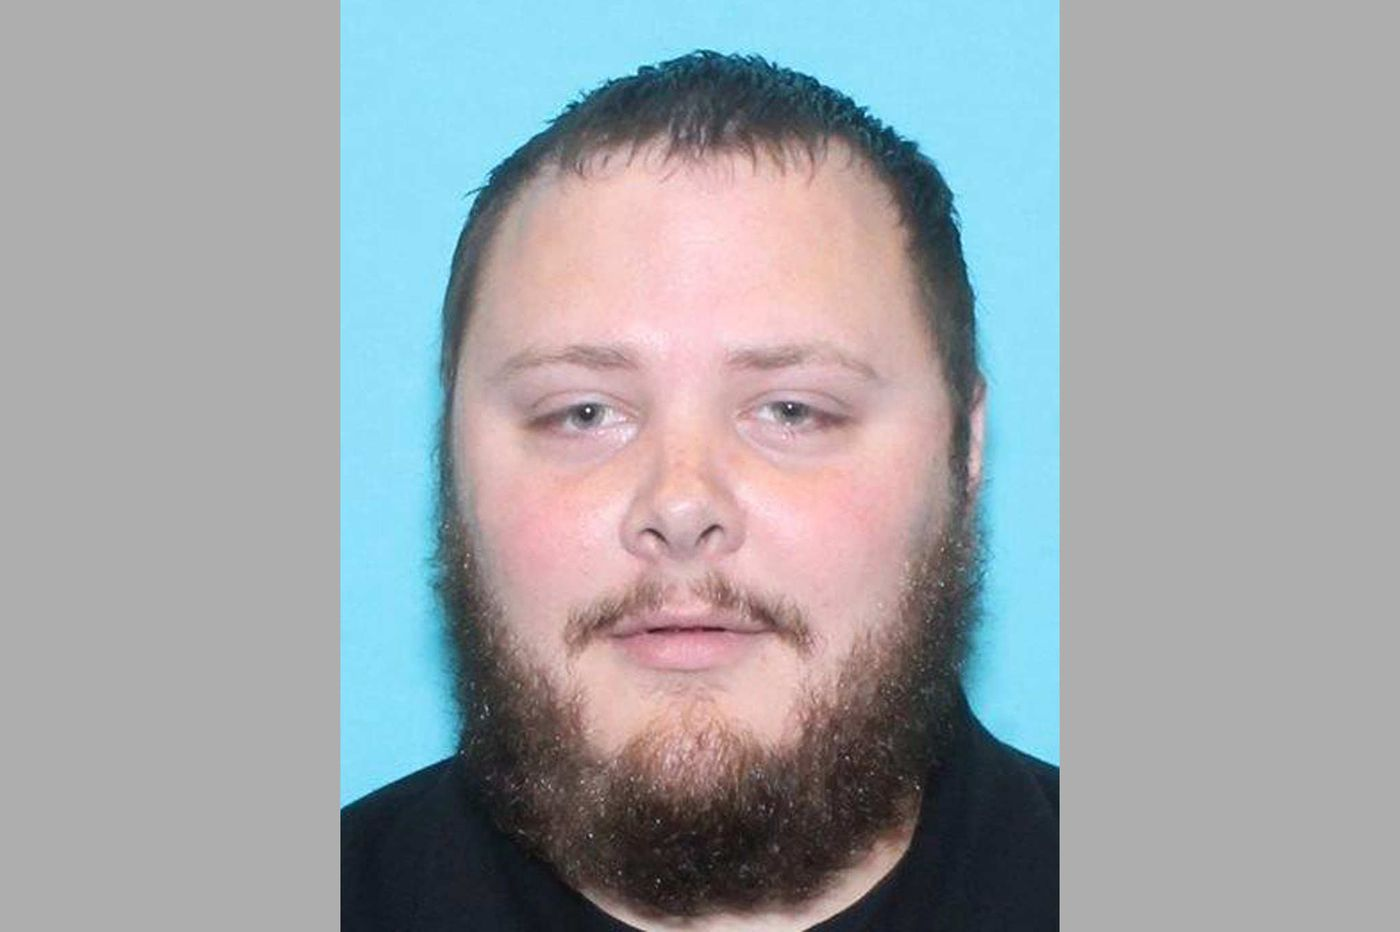 Who is Devin Patrick Kelley, the gunman officials say killed churchgoers in Sutherland Springs?